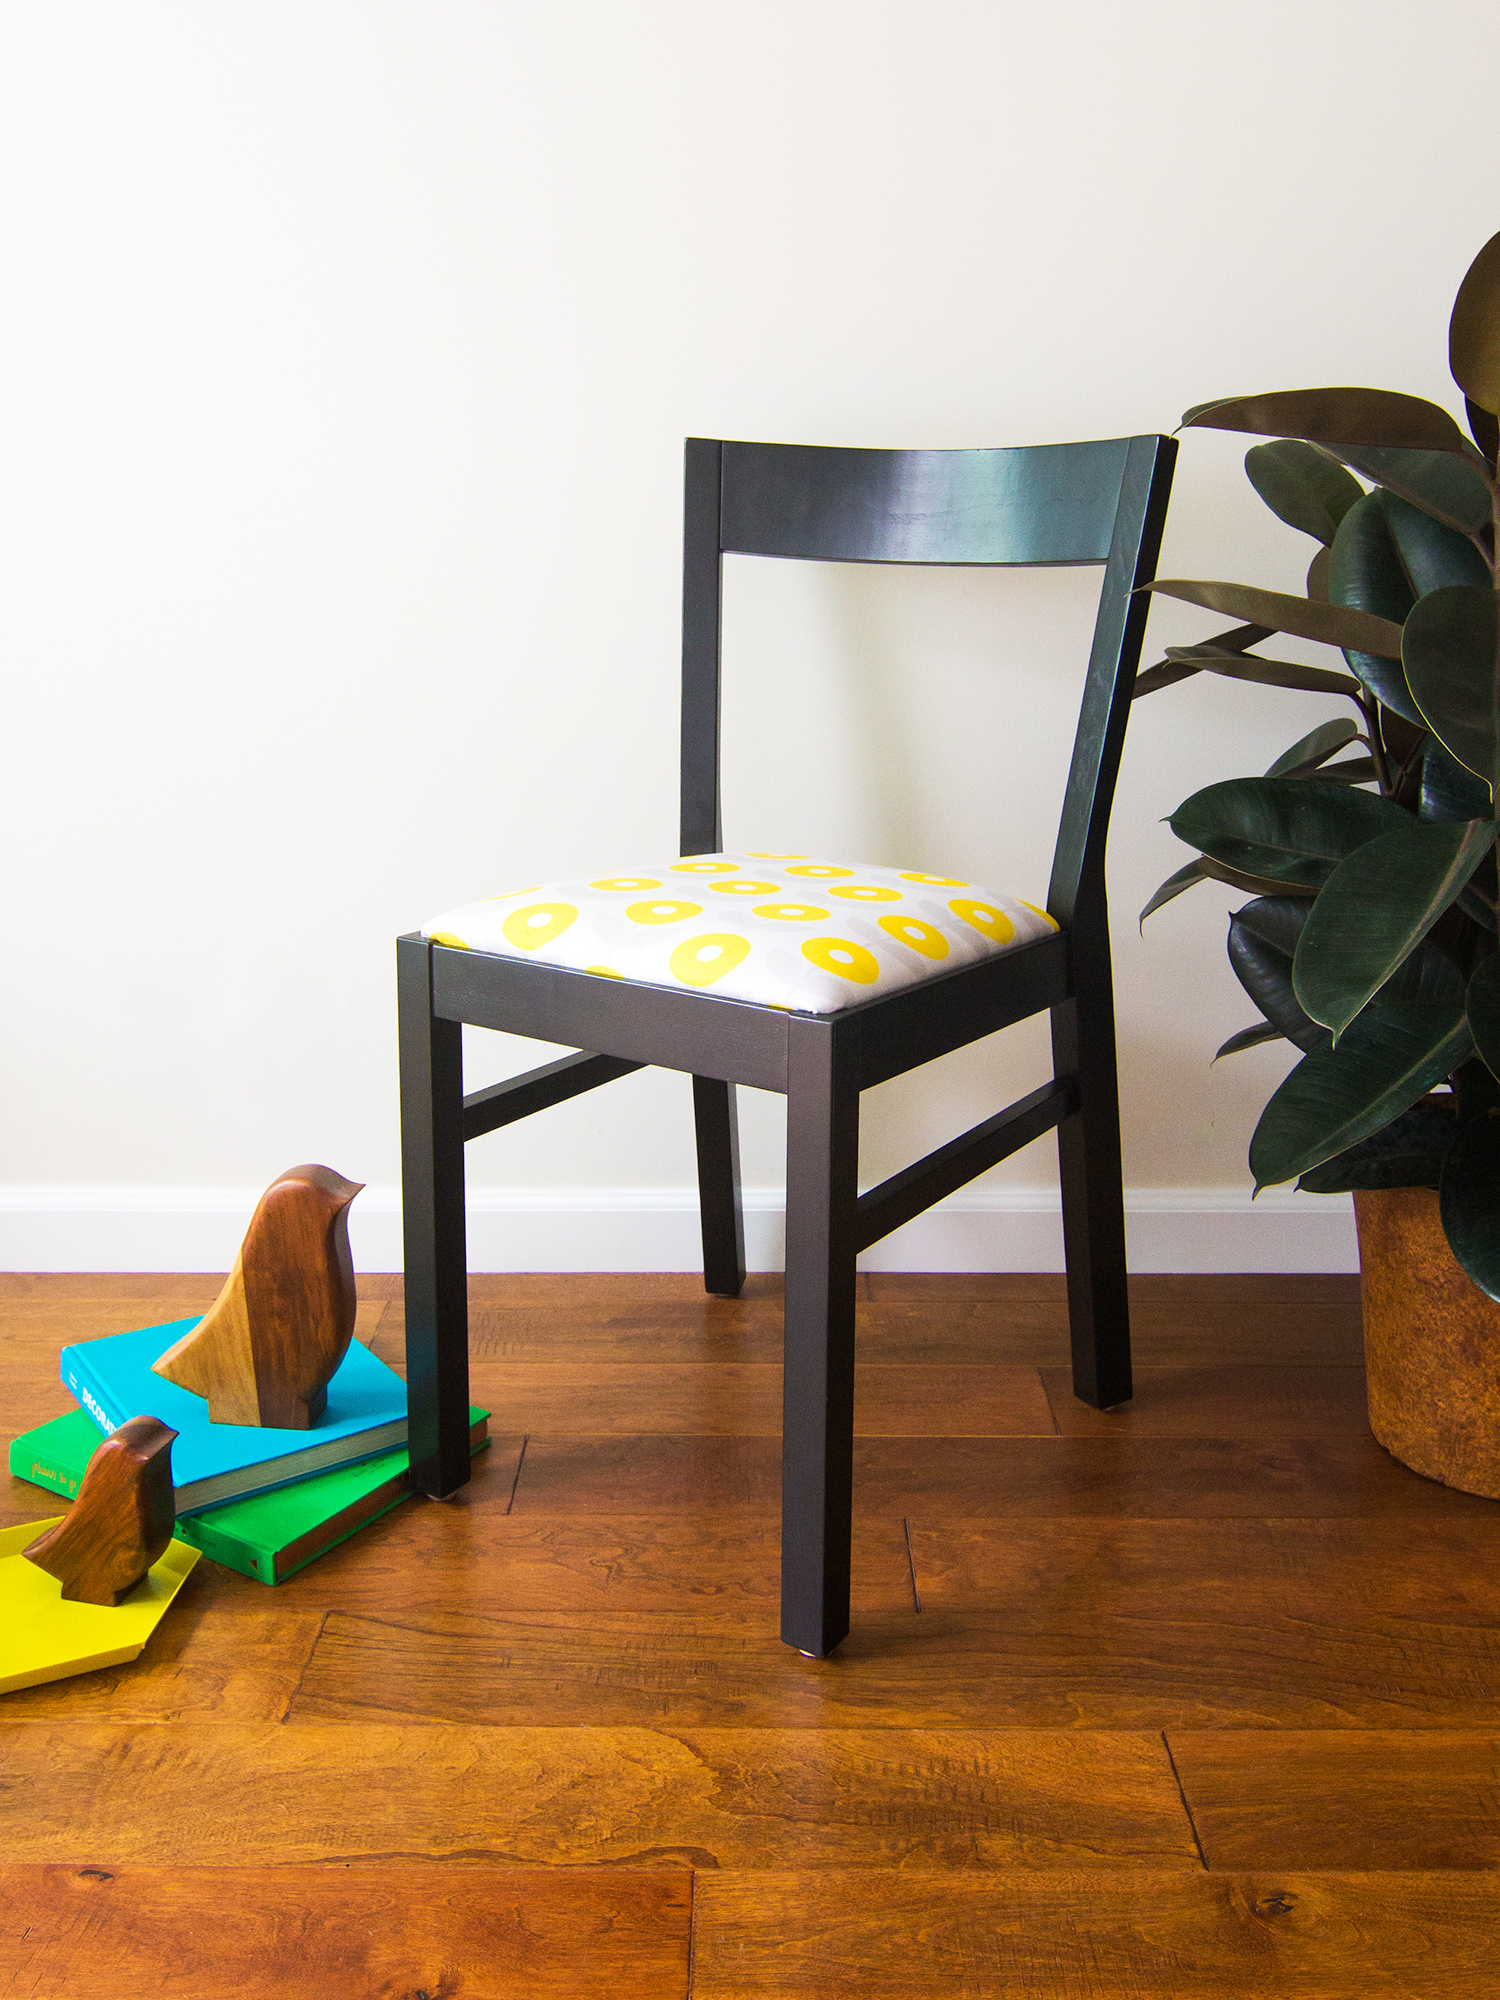 Give Life To Old Chairs With Your Very Own Custom Printed Fabric Click Through Our Dining Room Table Was